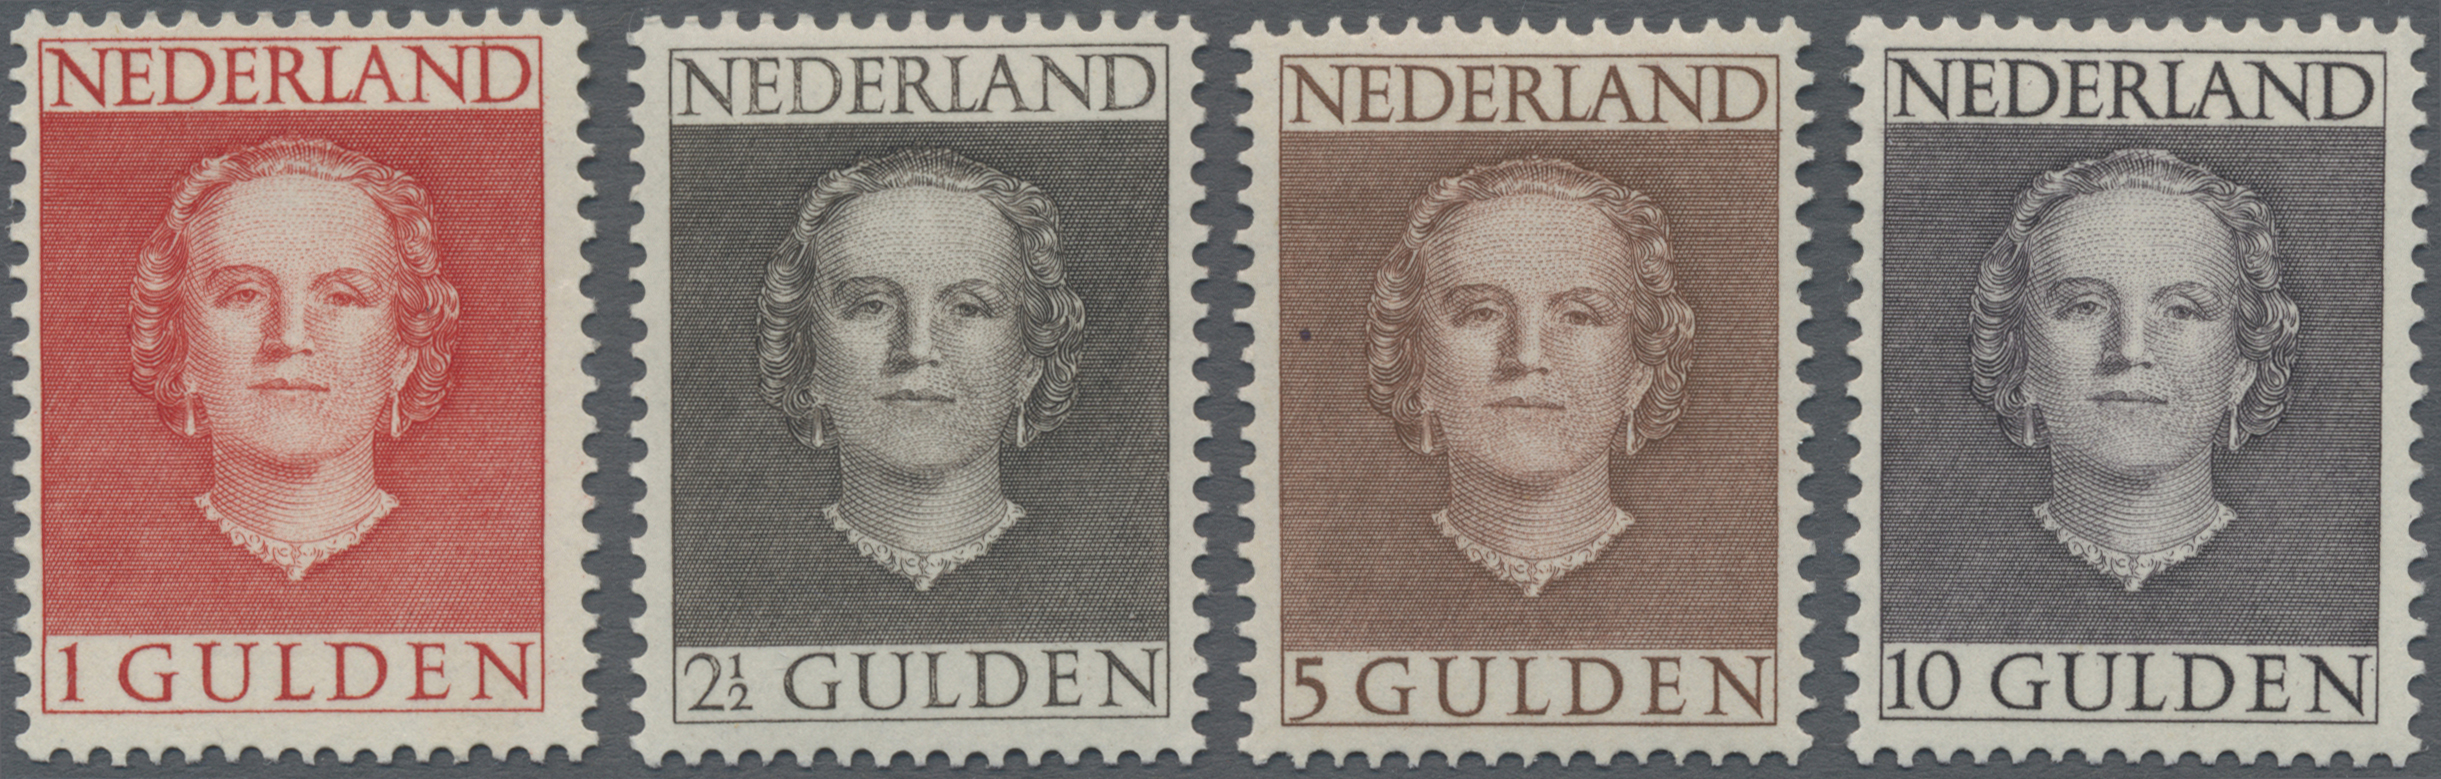 Lot 14431 - niederlande  -  Auktionshaus Christoph Gärtner GmbH & Co. KG Sale #47 Single lots: Asia, Thematics, Overseas, Europe